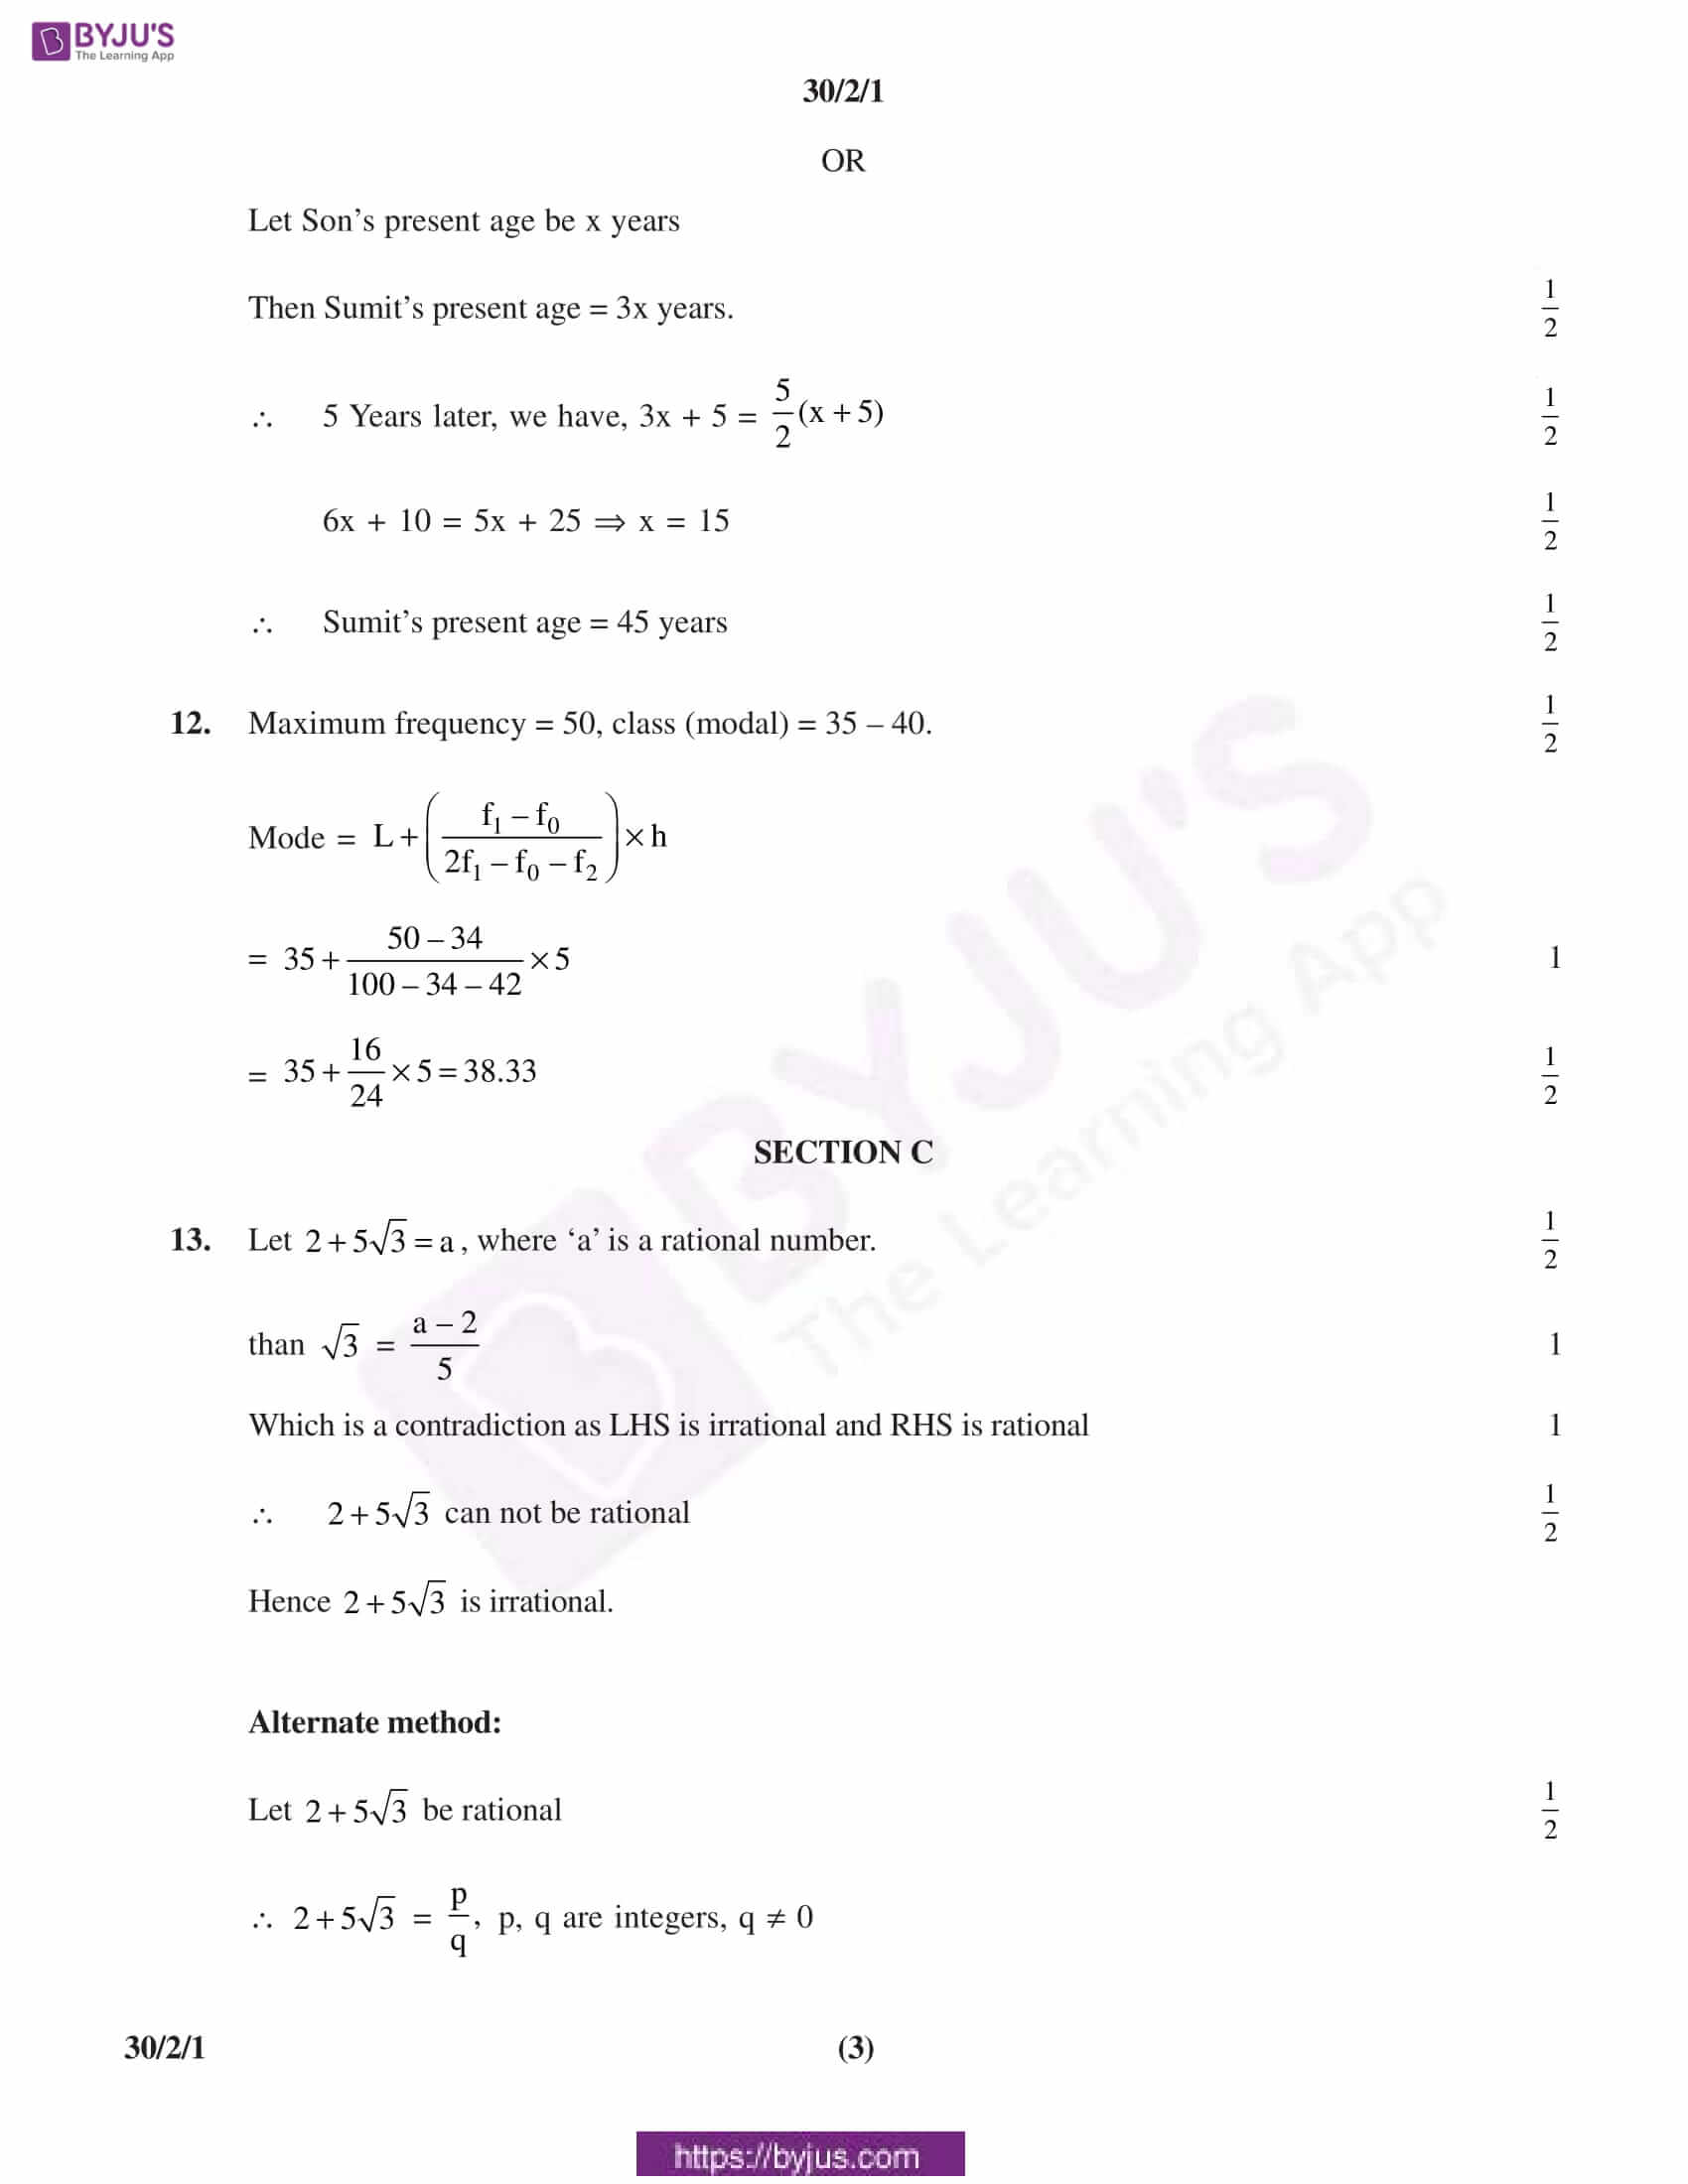 CBSE Class 10 Maths Solution PDF 2019 Set 2 03